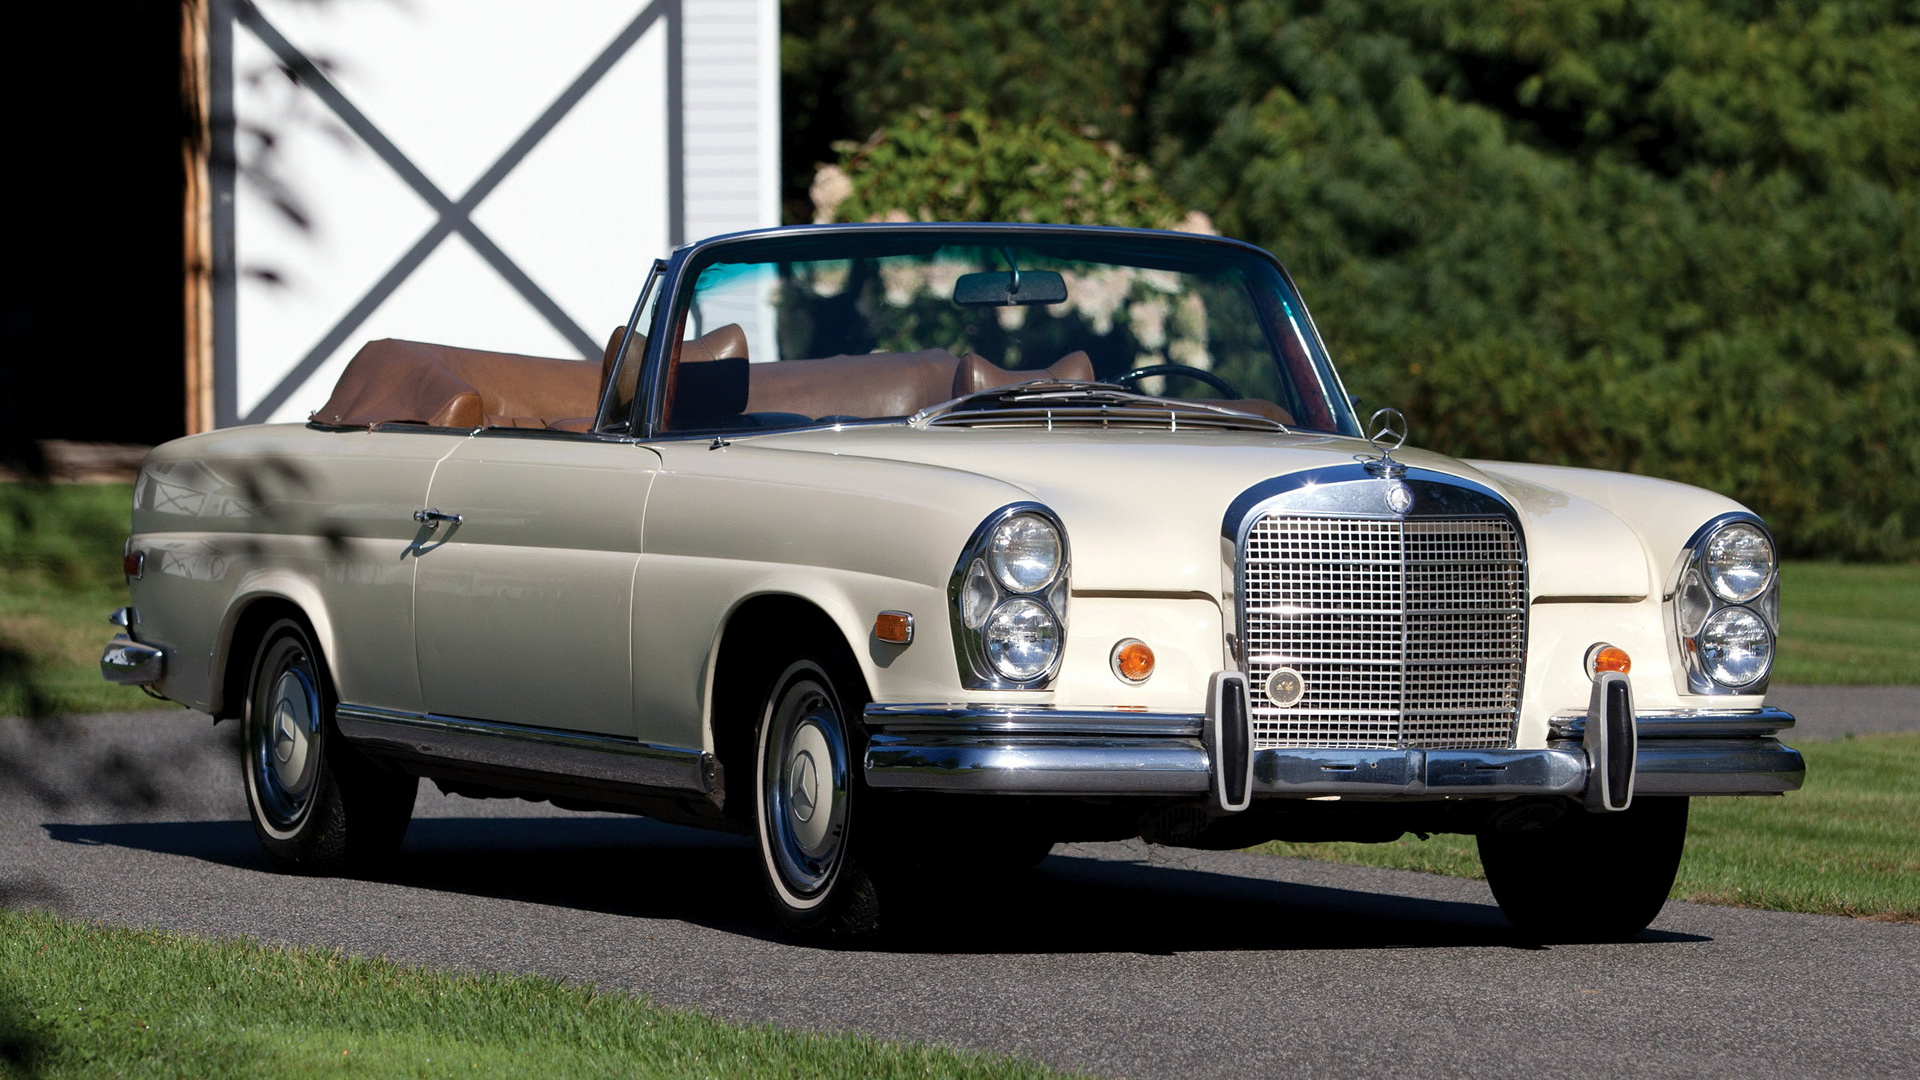 1967 mercedes benz 280 se cabriolet us wallpapers and. Black Bedroom Furniture Sets. Home Design Ideas